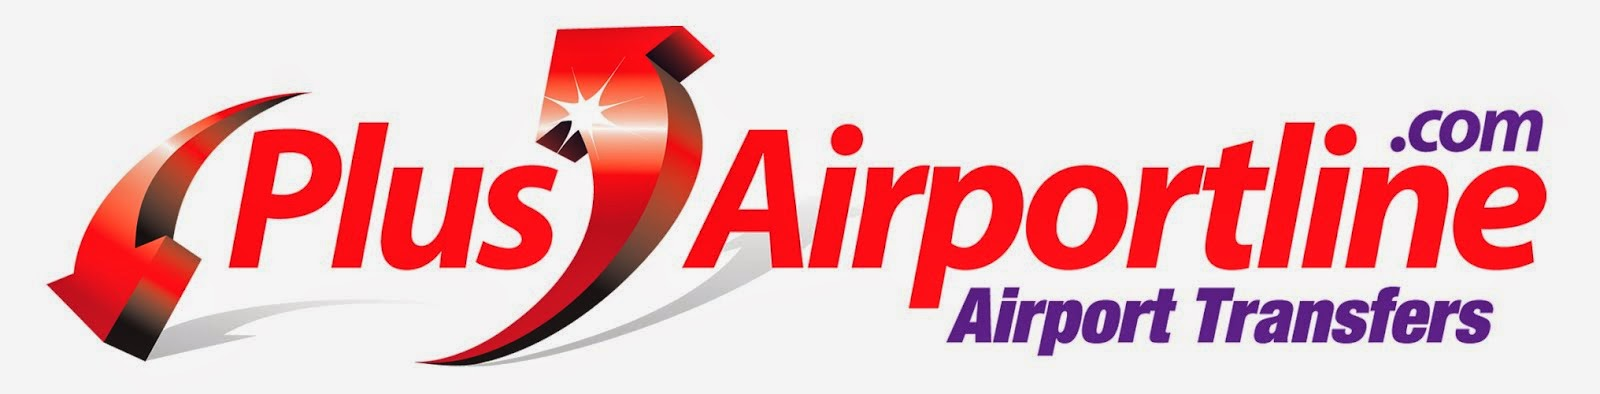 Corfu Airport Transfer Partner